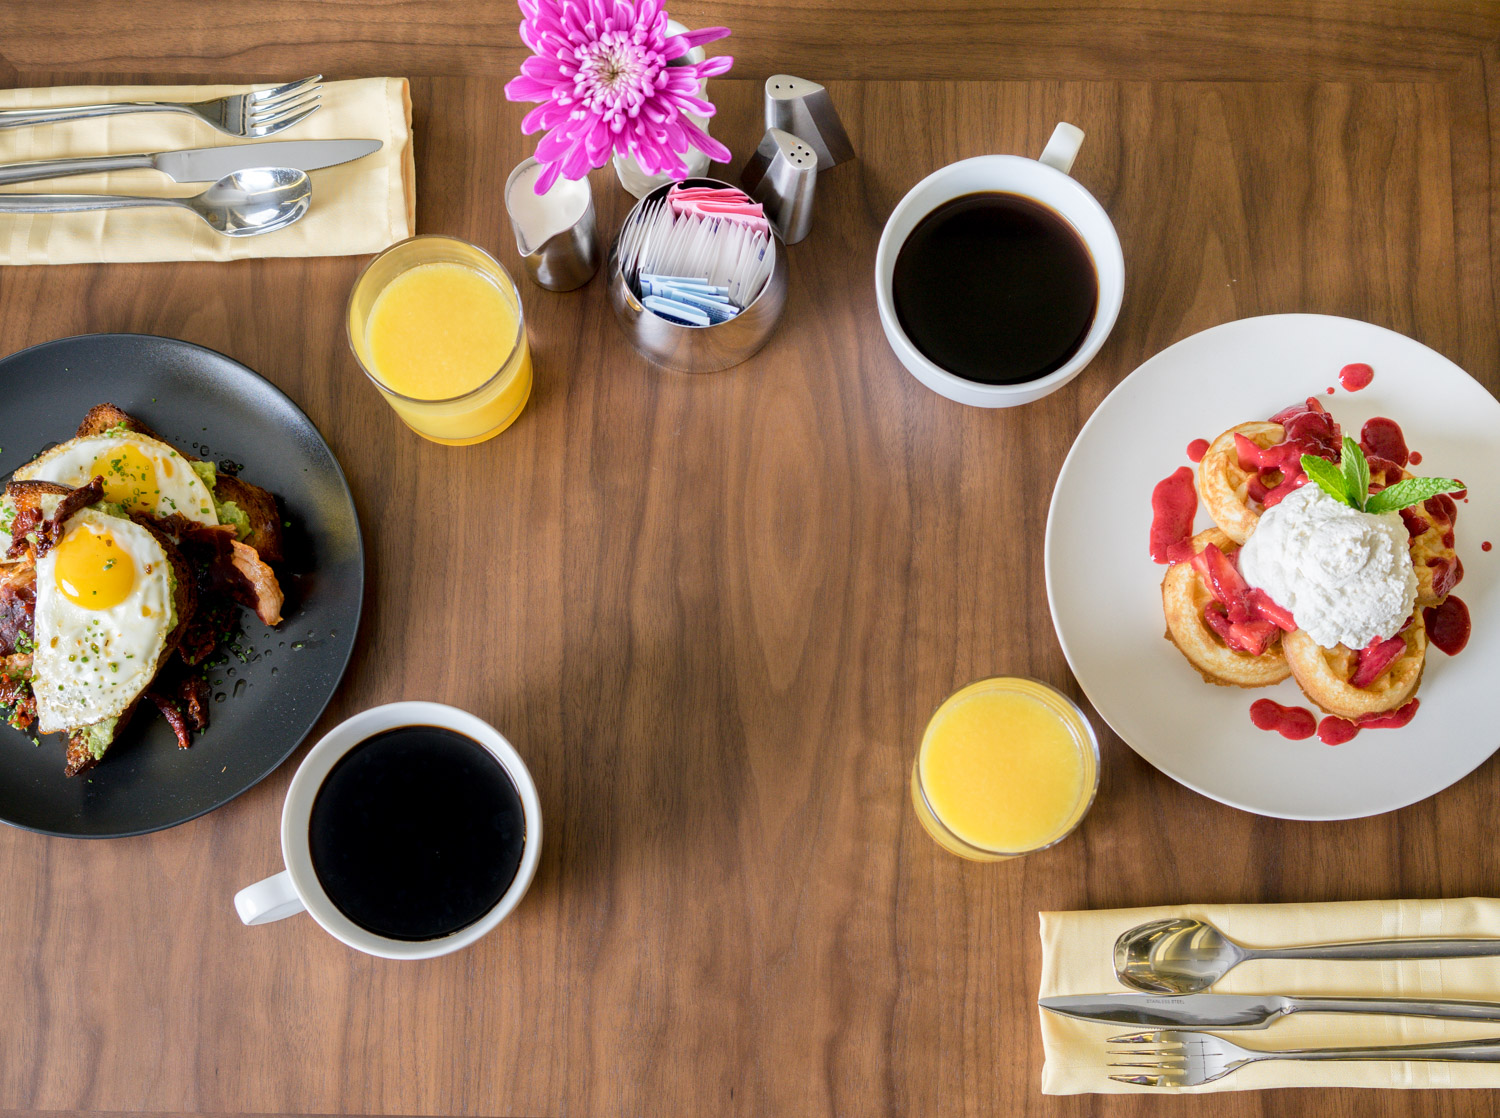 food-lifestyle-restaurant-table-setup-for-breakfast-photography-by-bayarea-food-photographer-at-afewgoodclicks